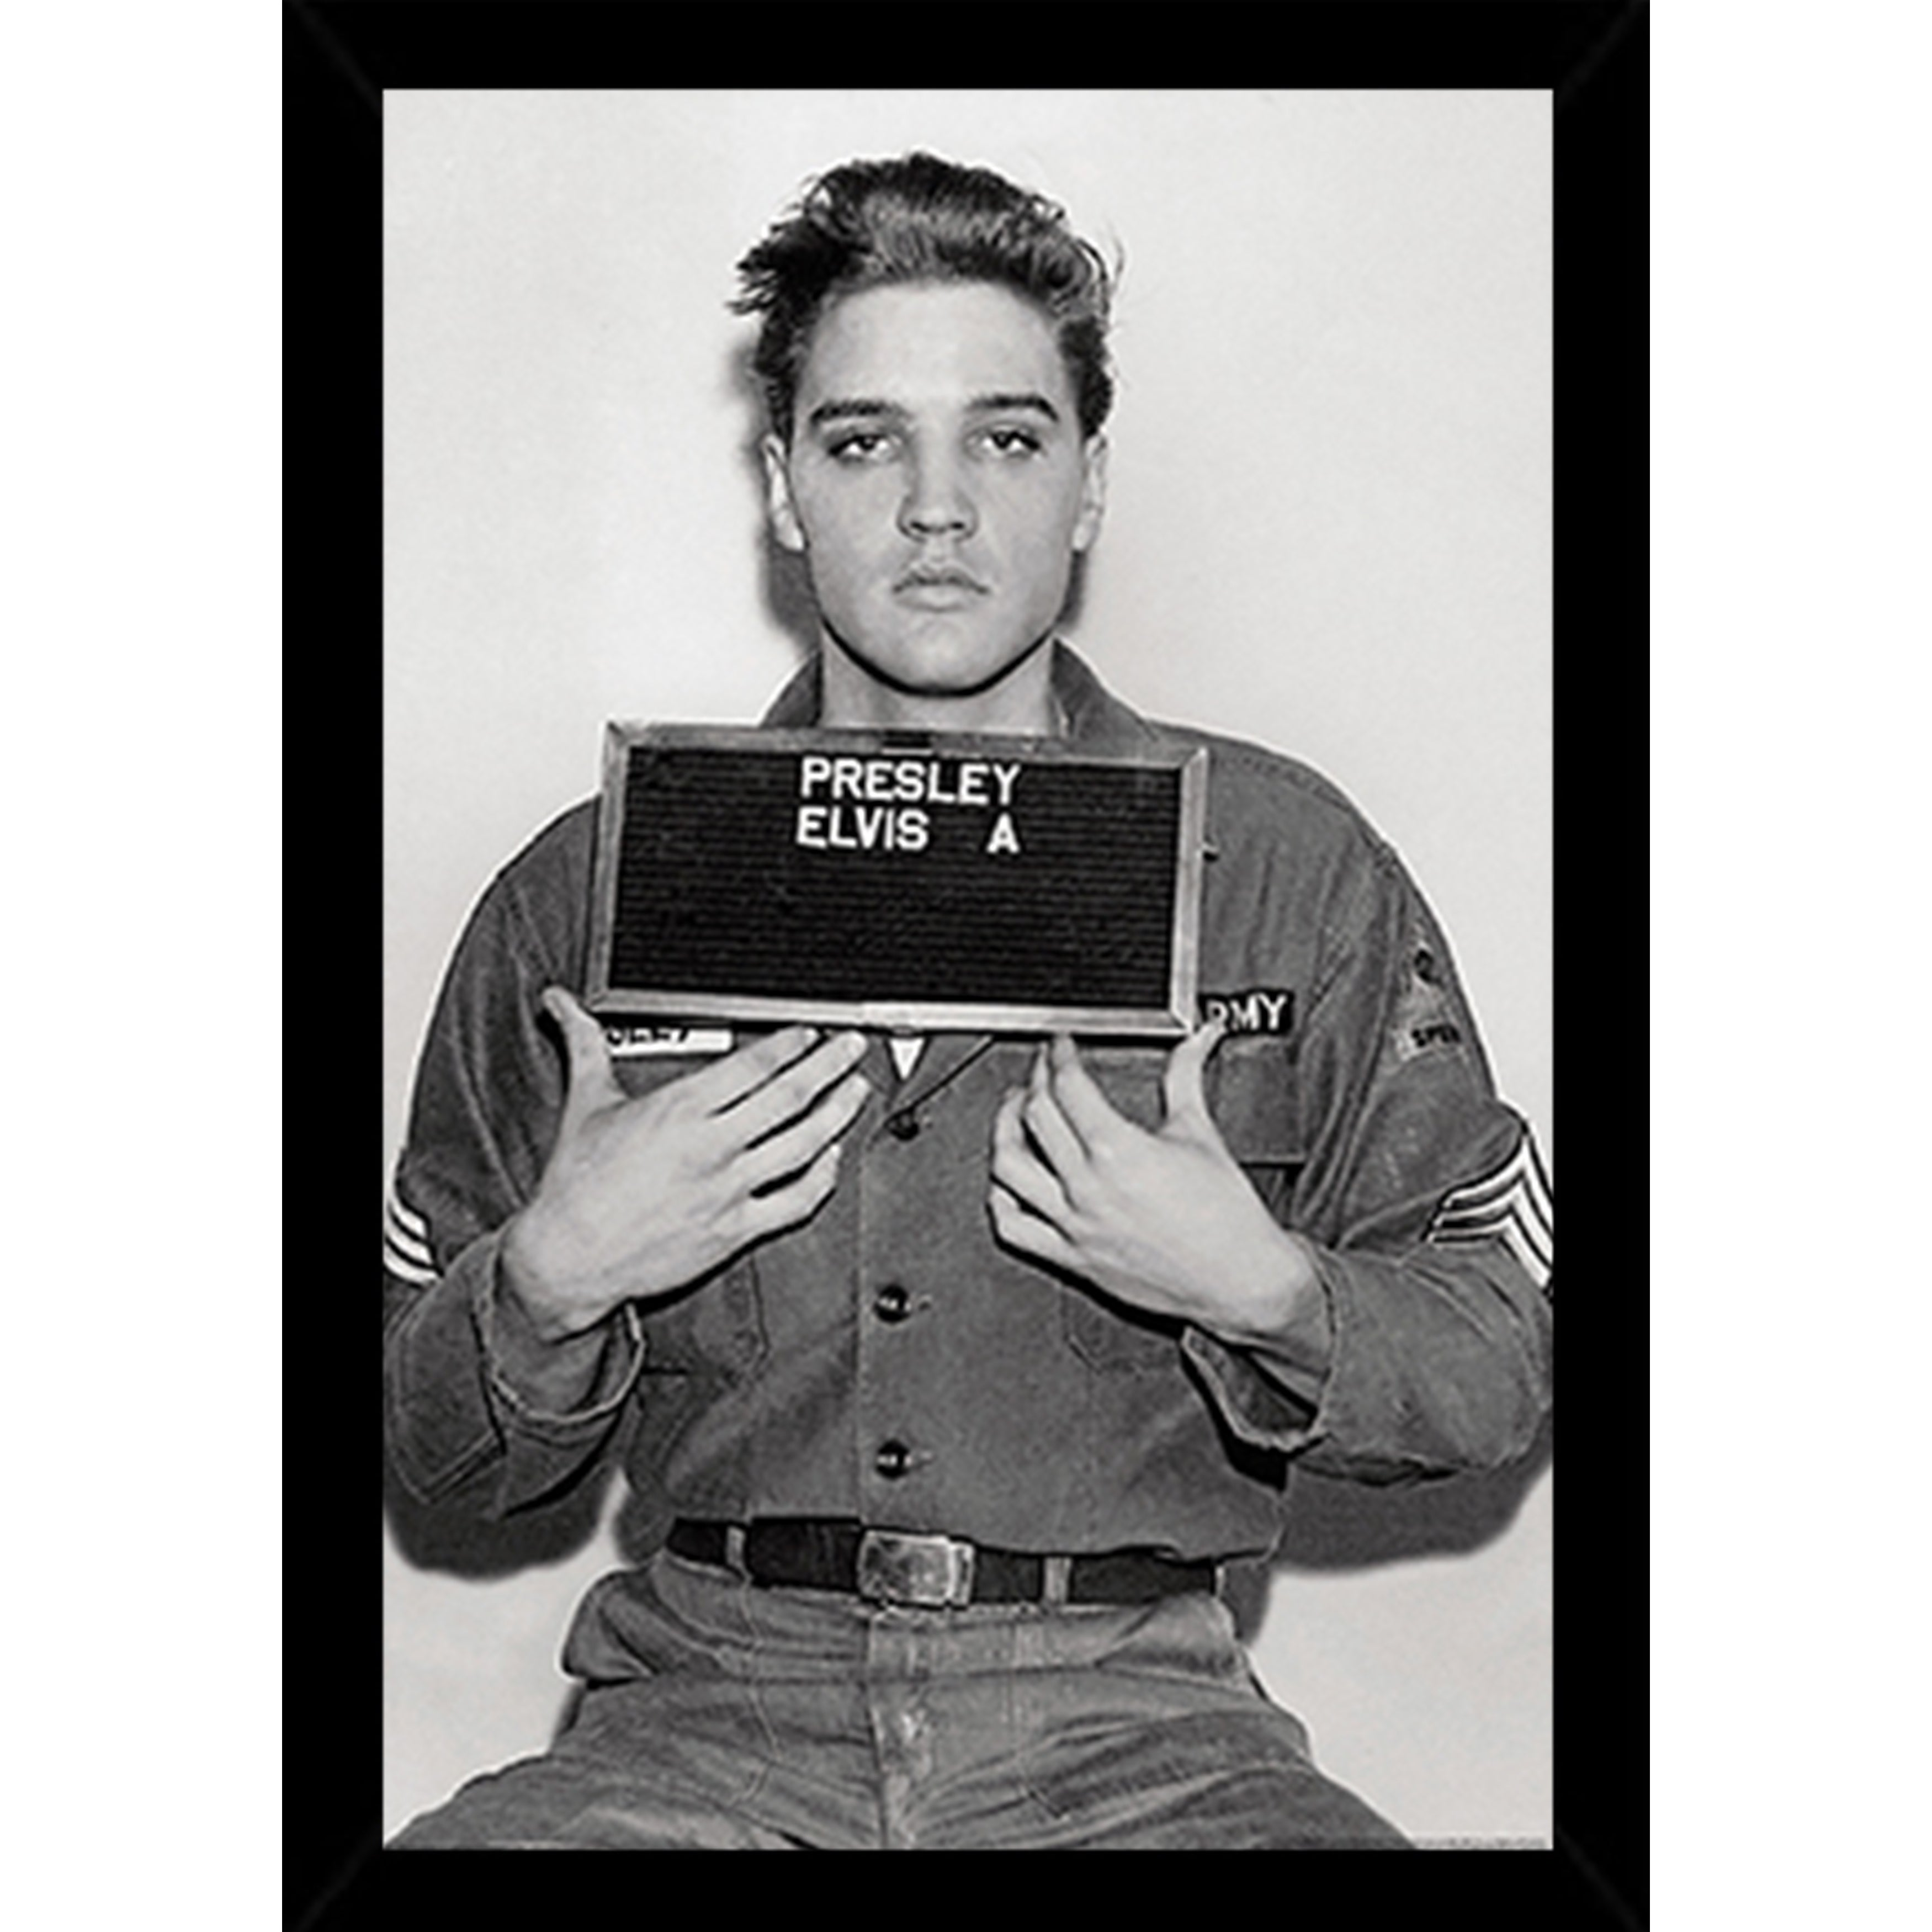 8a7751a2a1fc Elvis Presley - Enlistment Photo Poster in a Black Poster Frame (24x36)